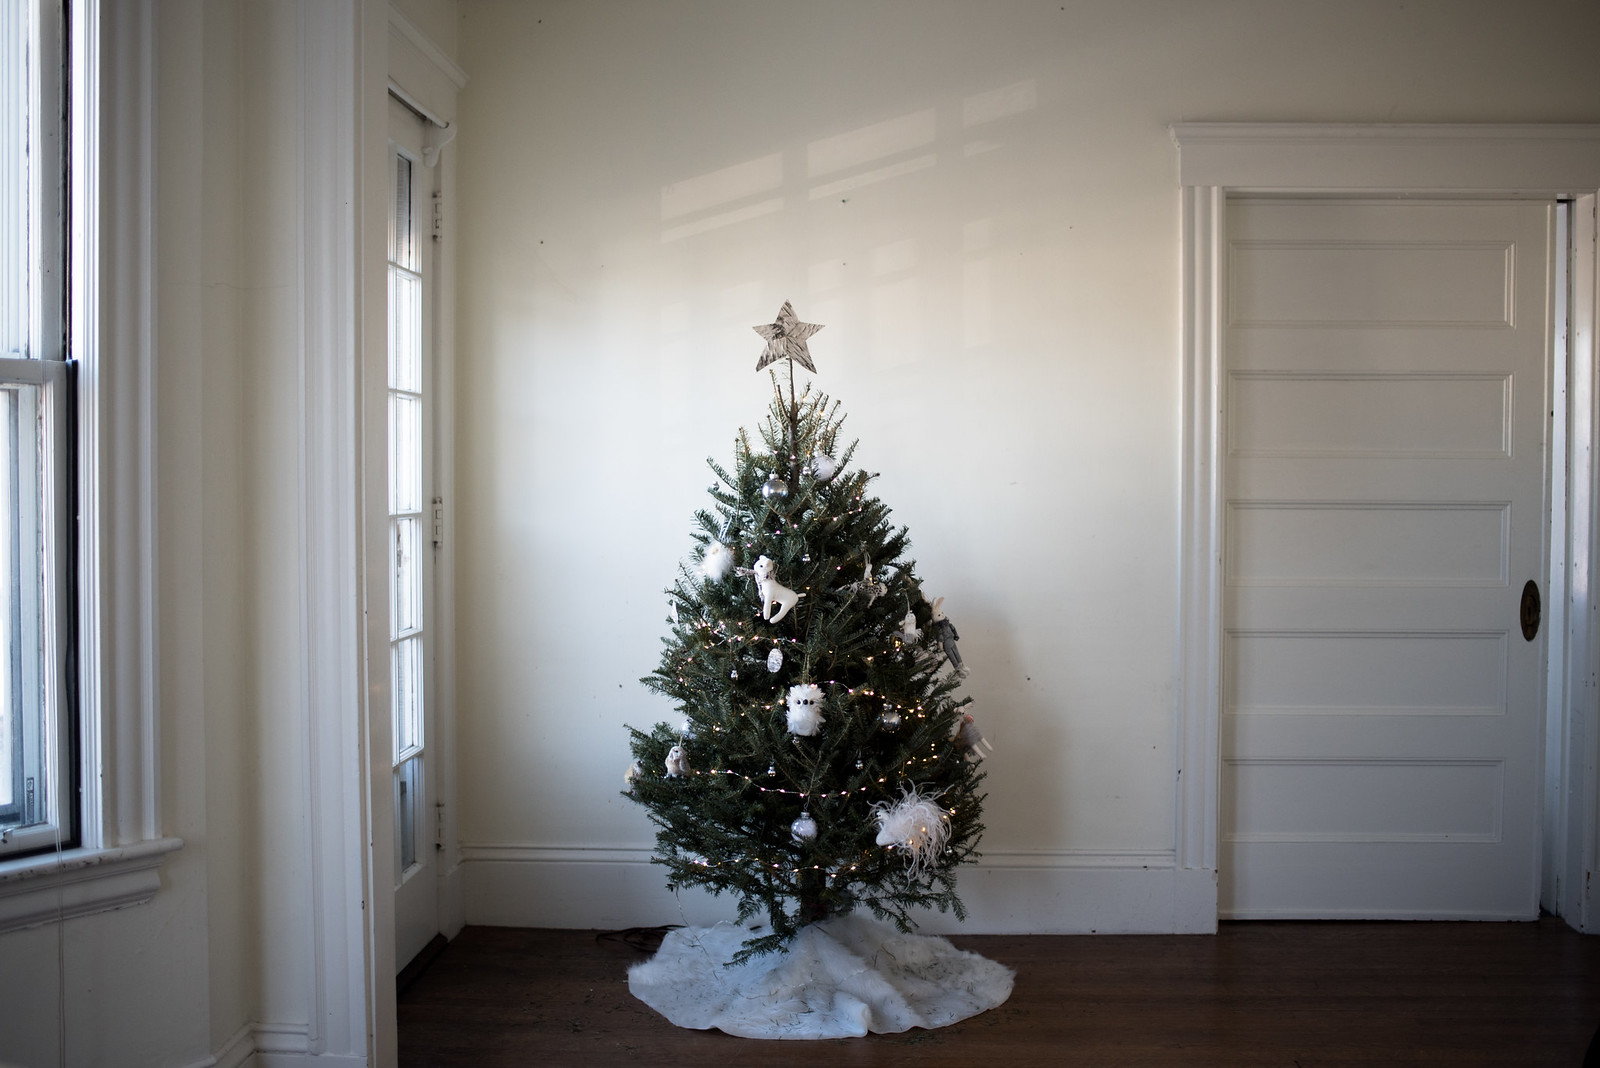 Whimsical Monochrome Christmas Tree on juliettelaura.blogspot.com